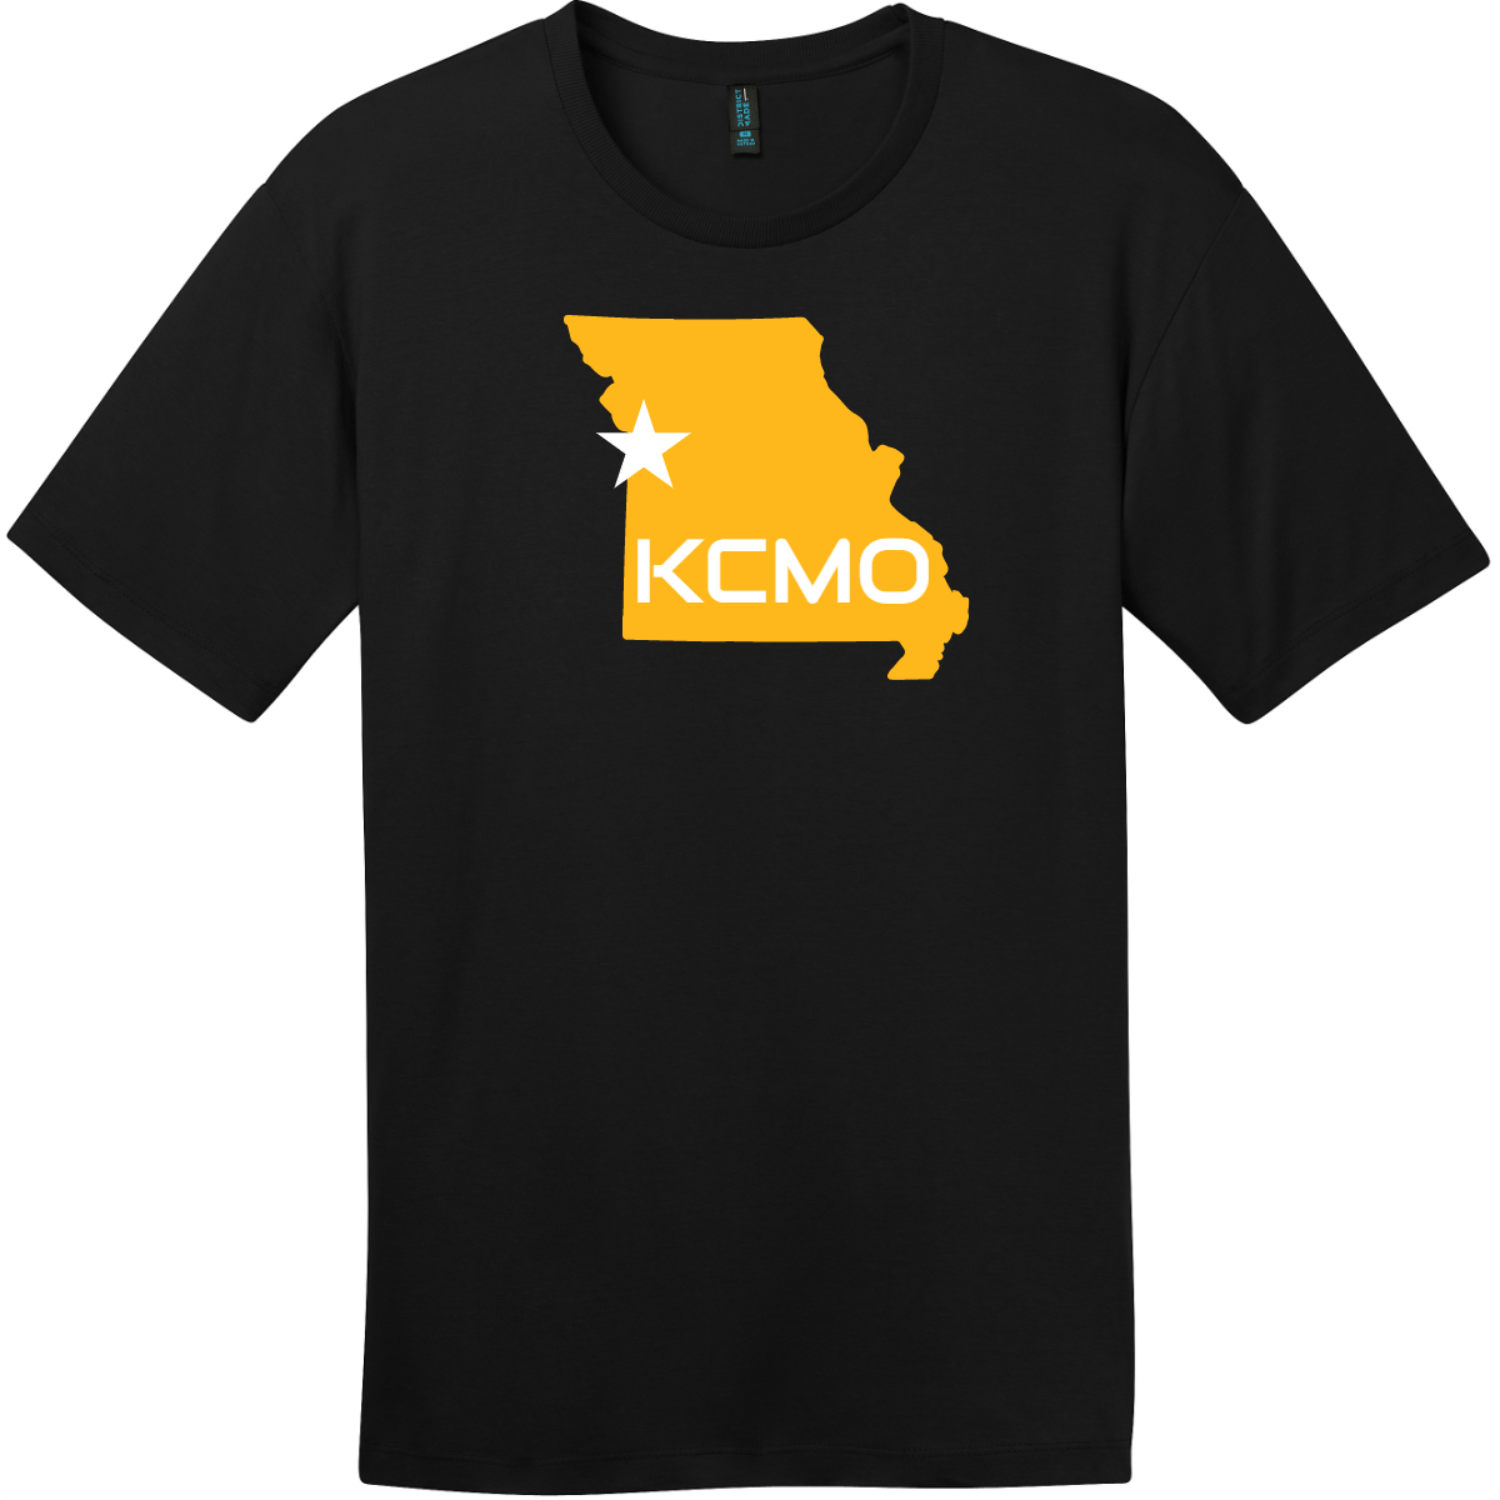 KCMO Missouri T-Shirt Jet Black District Perfect Weight Tee DT104